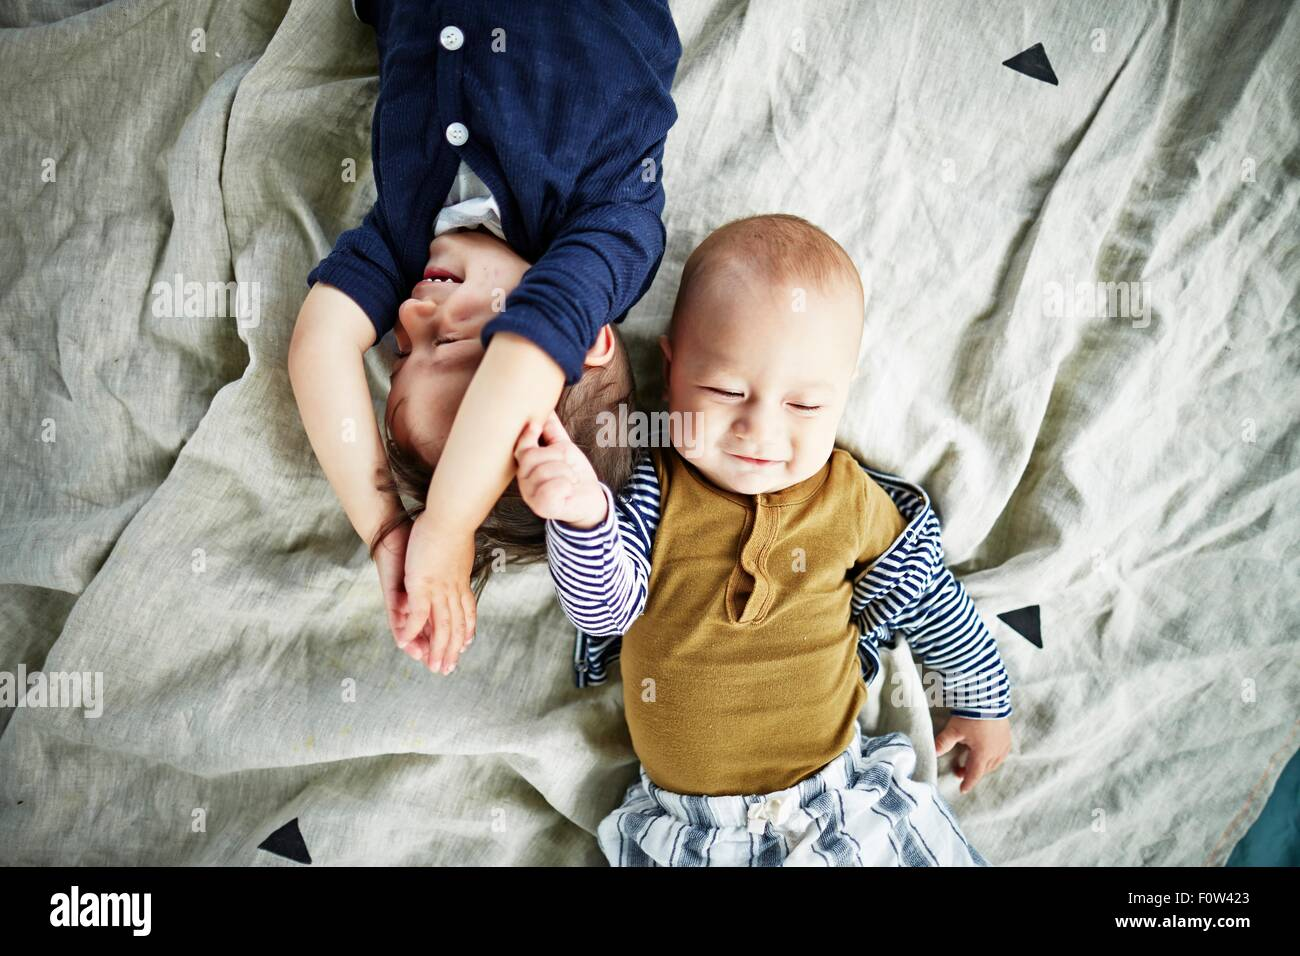 Brothers playing on bed - Stock Image